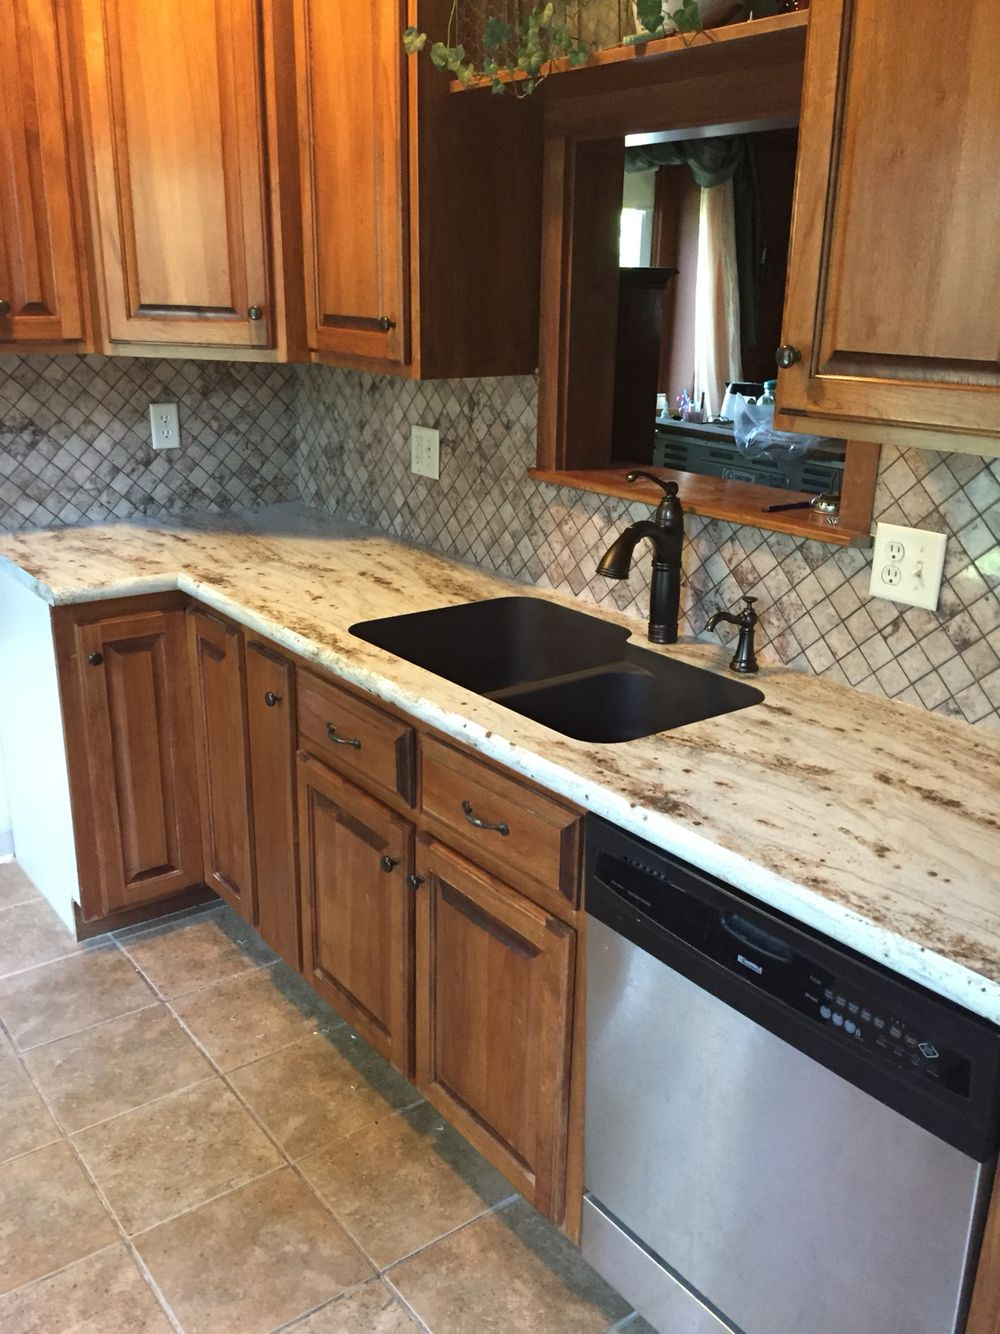 River Gold Formica Countertops With Tyvarian Tile Backsplash